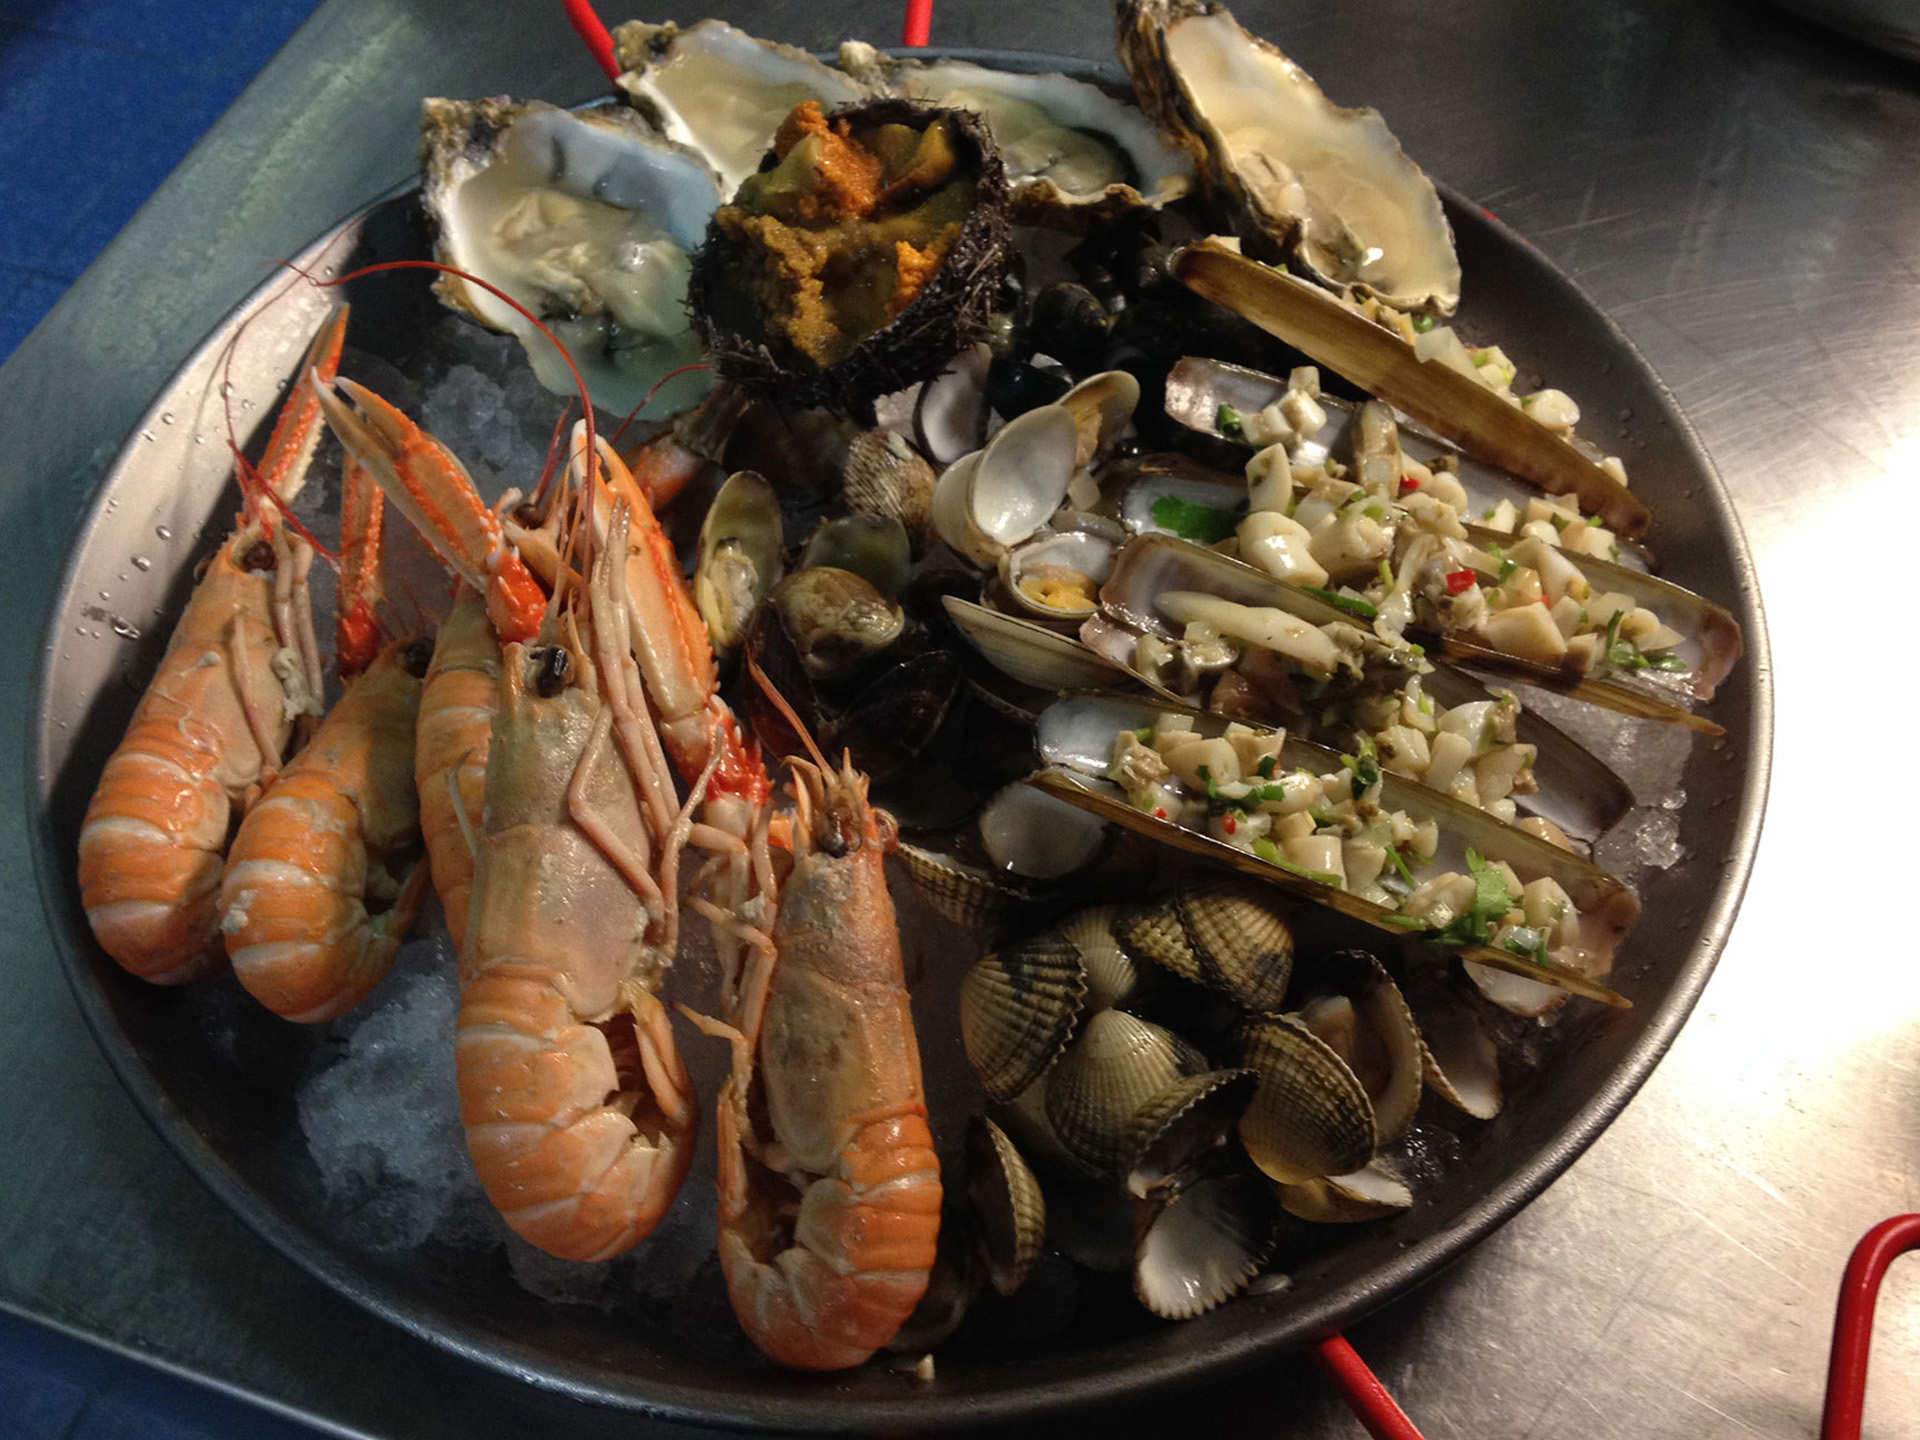 Fruits de mer bereid in de Amstelzaal